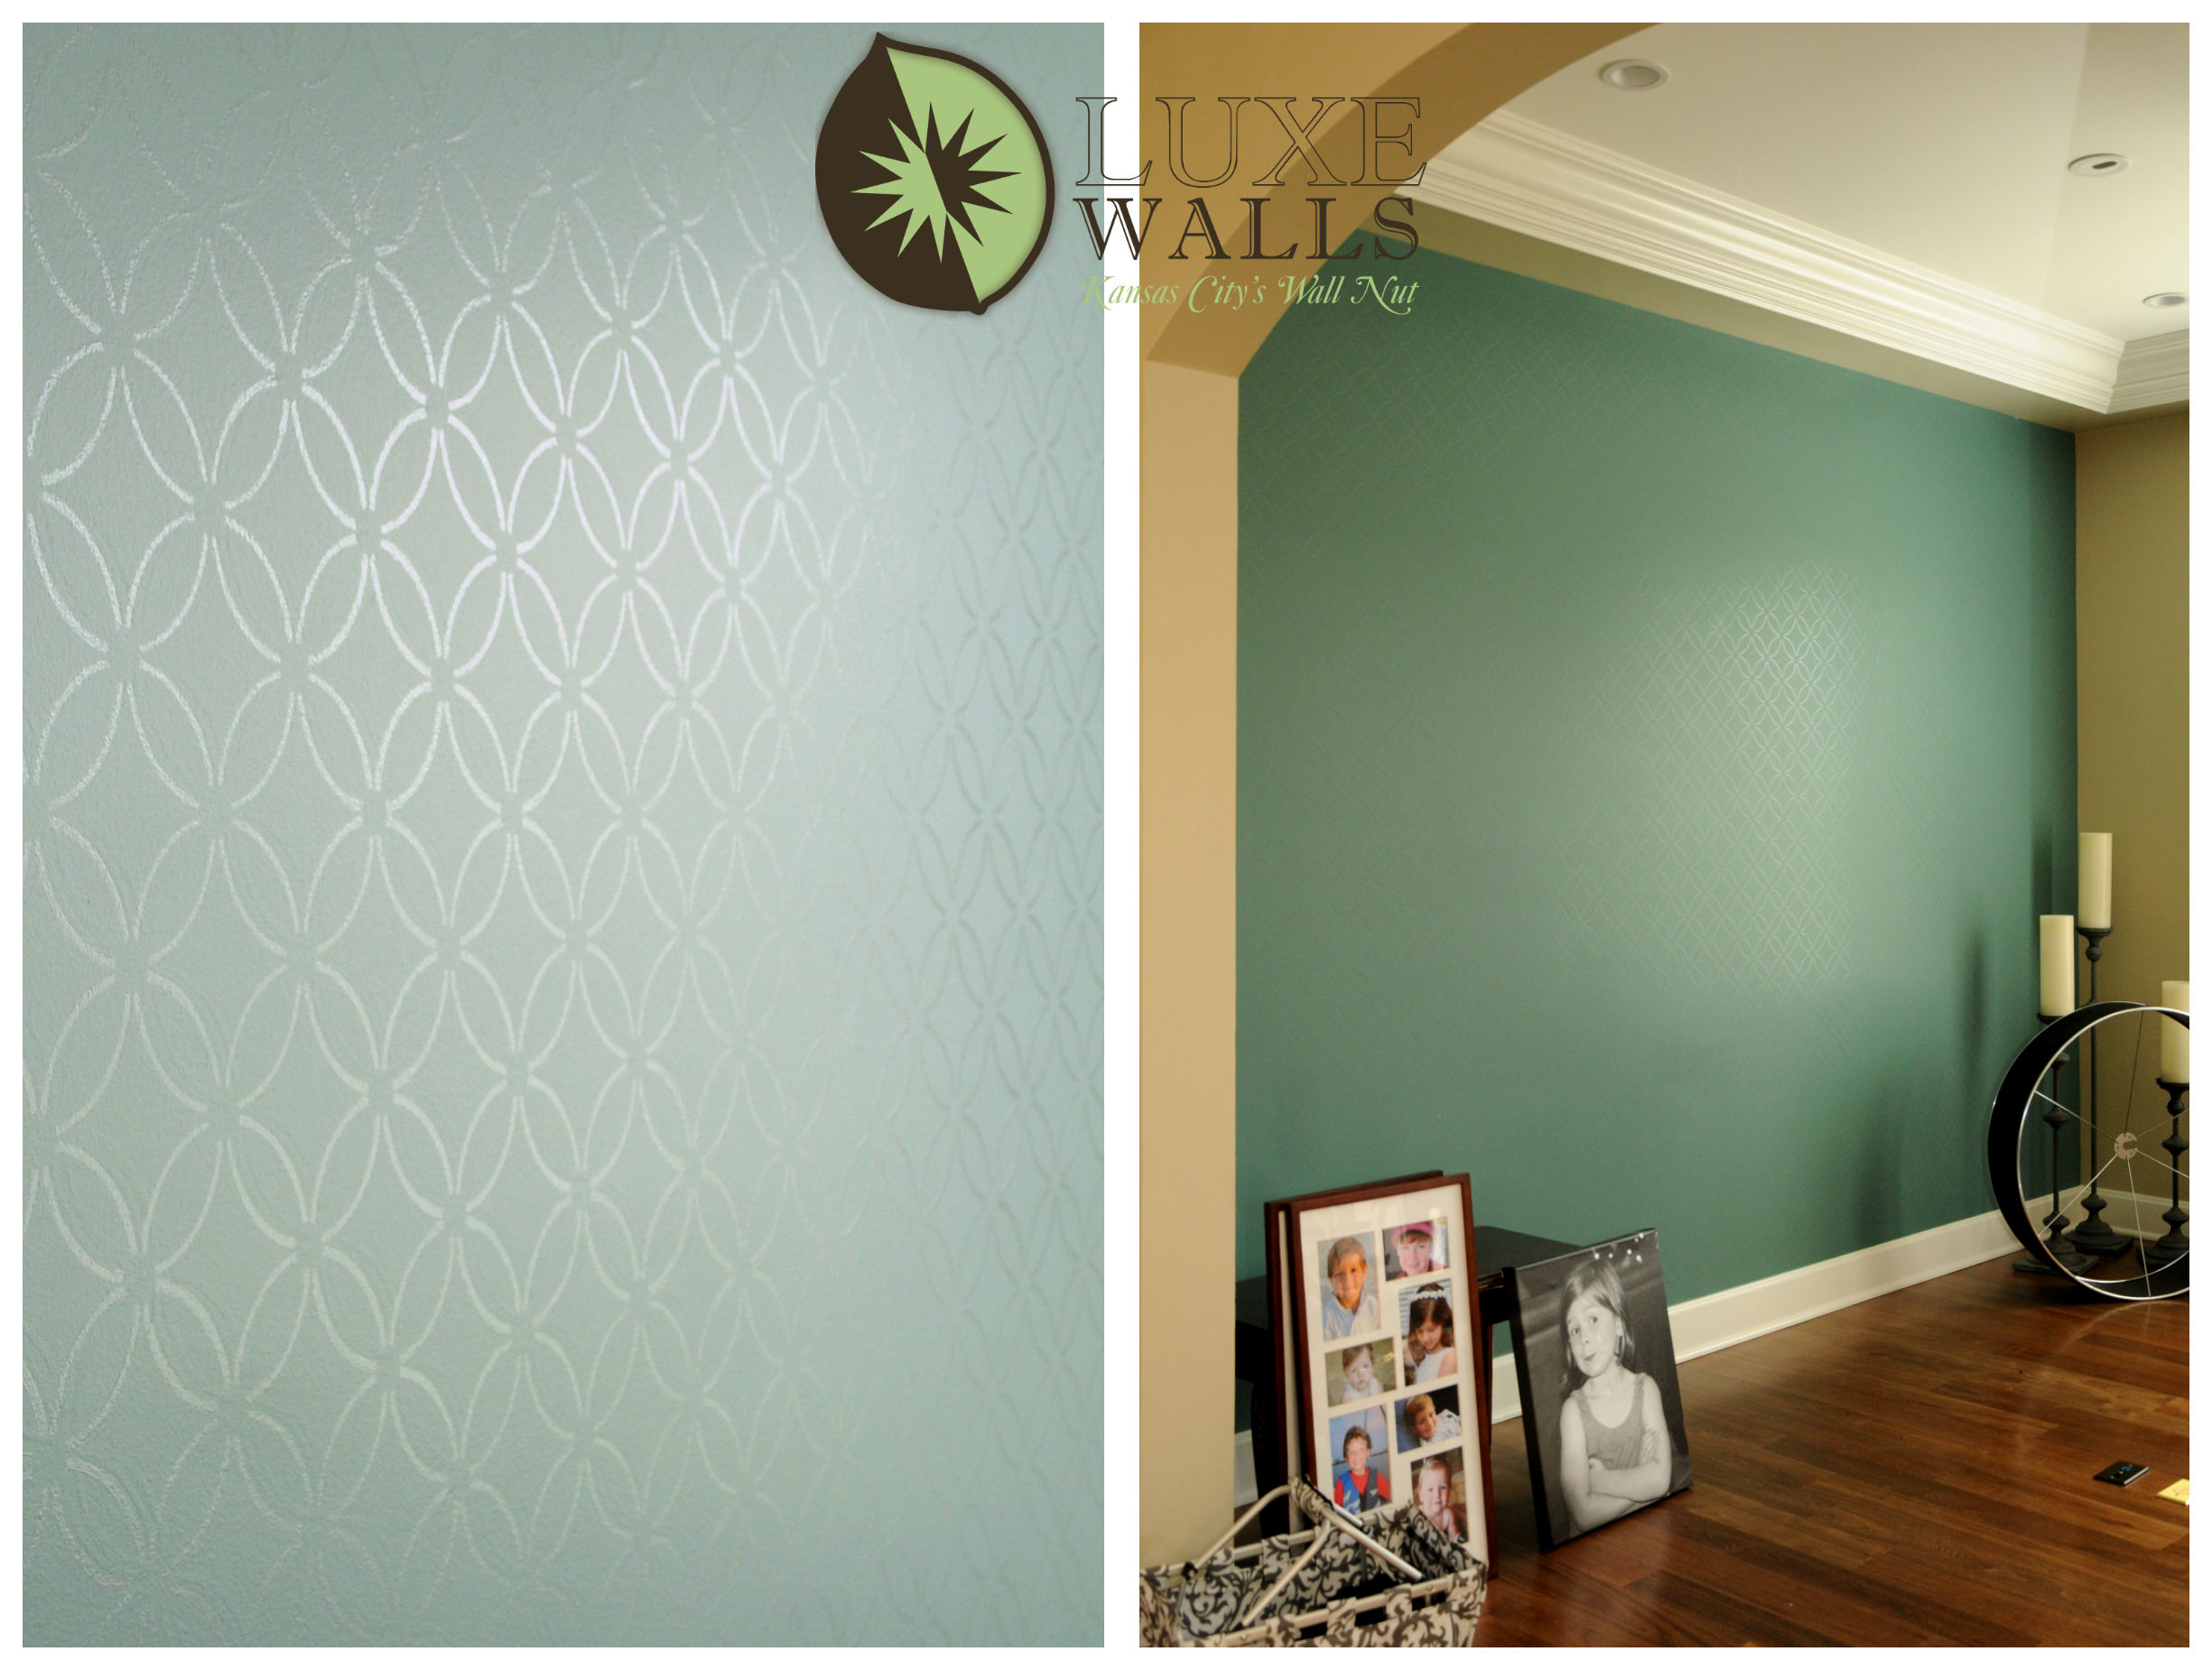 Stenciling Luxe Walls